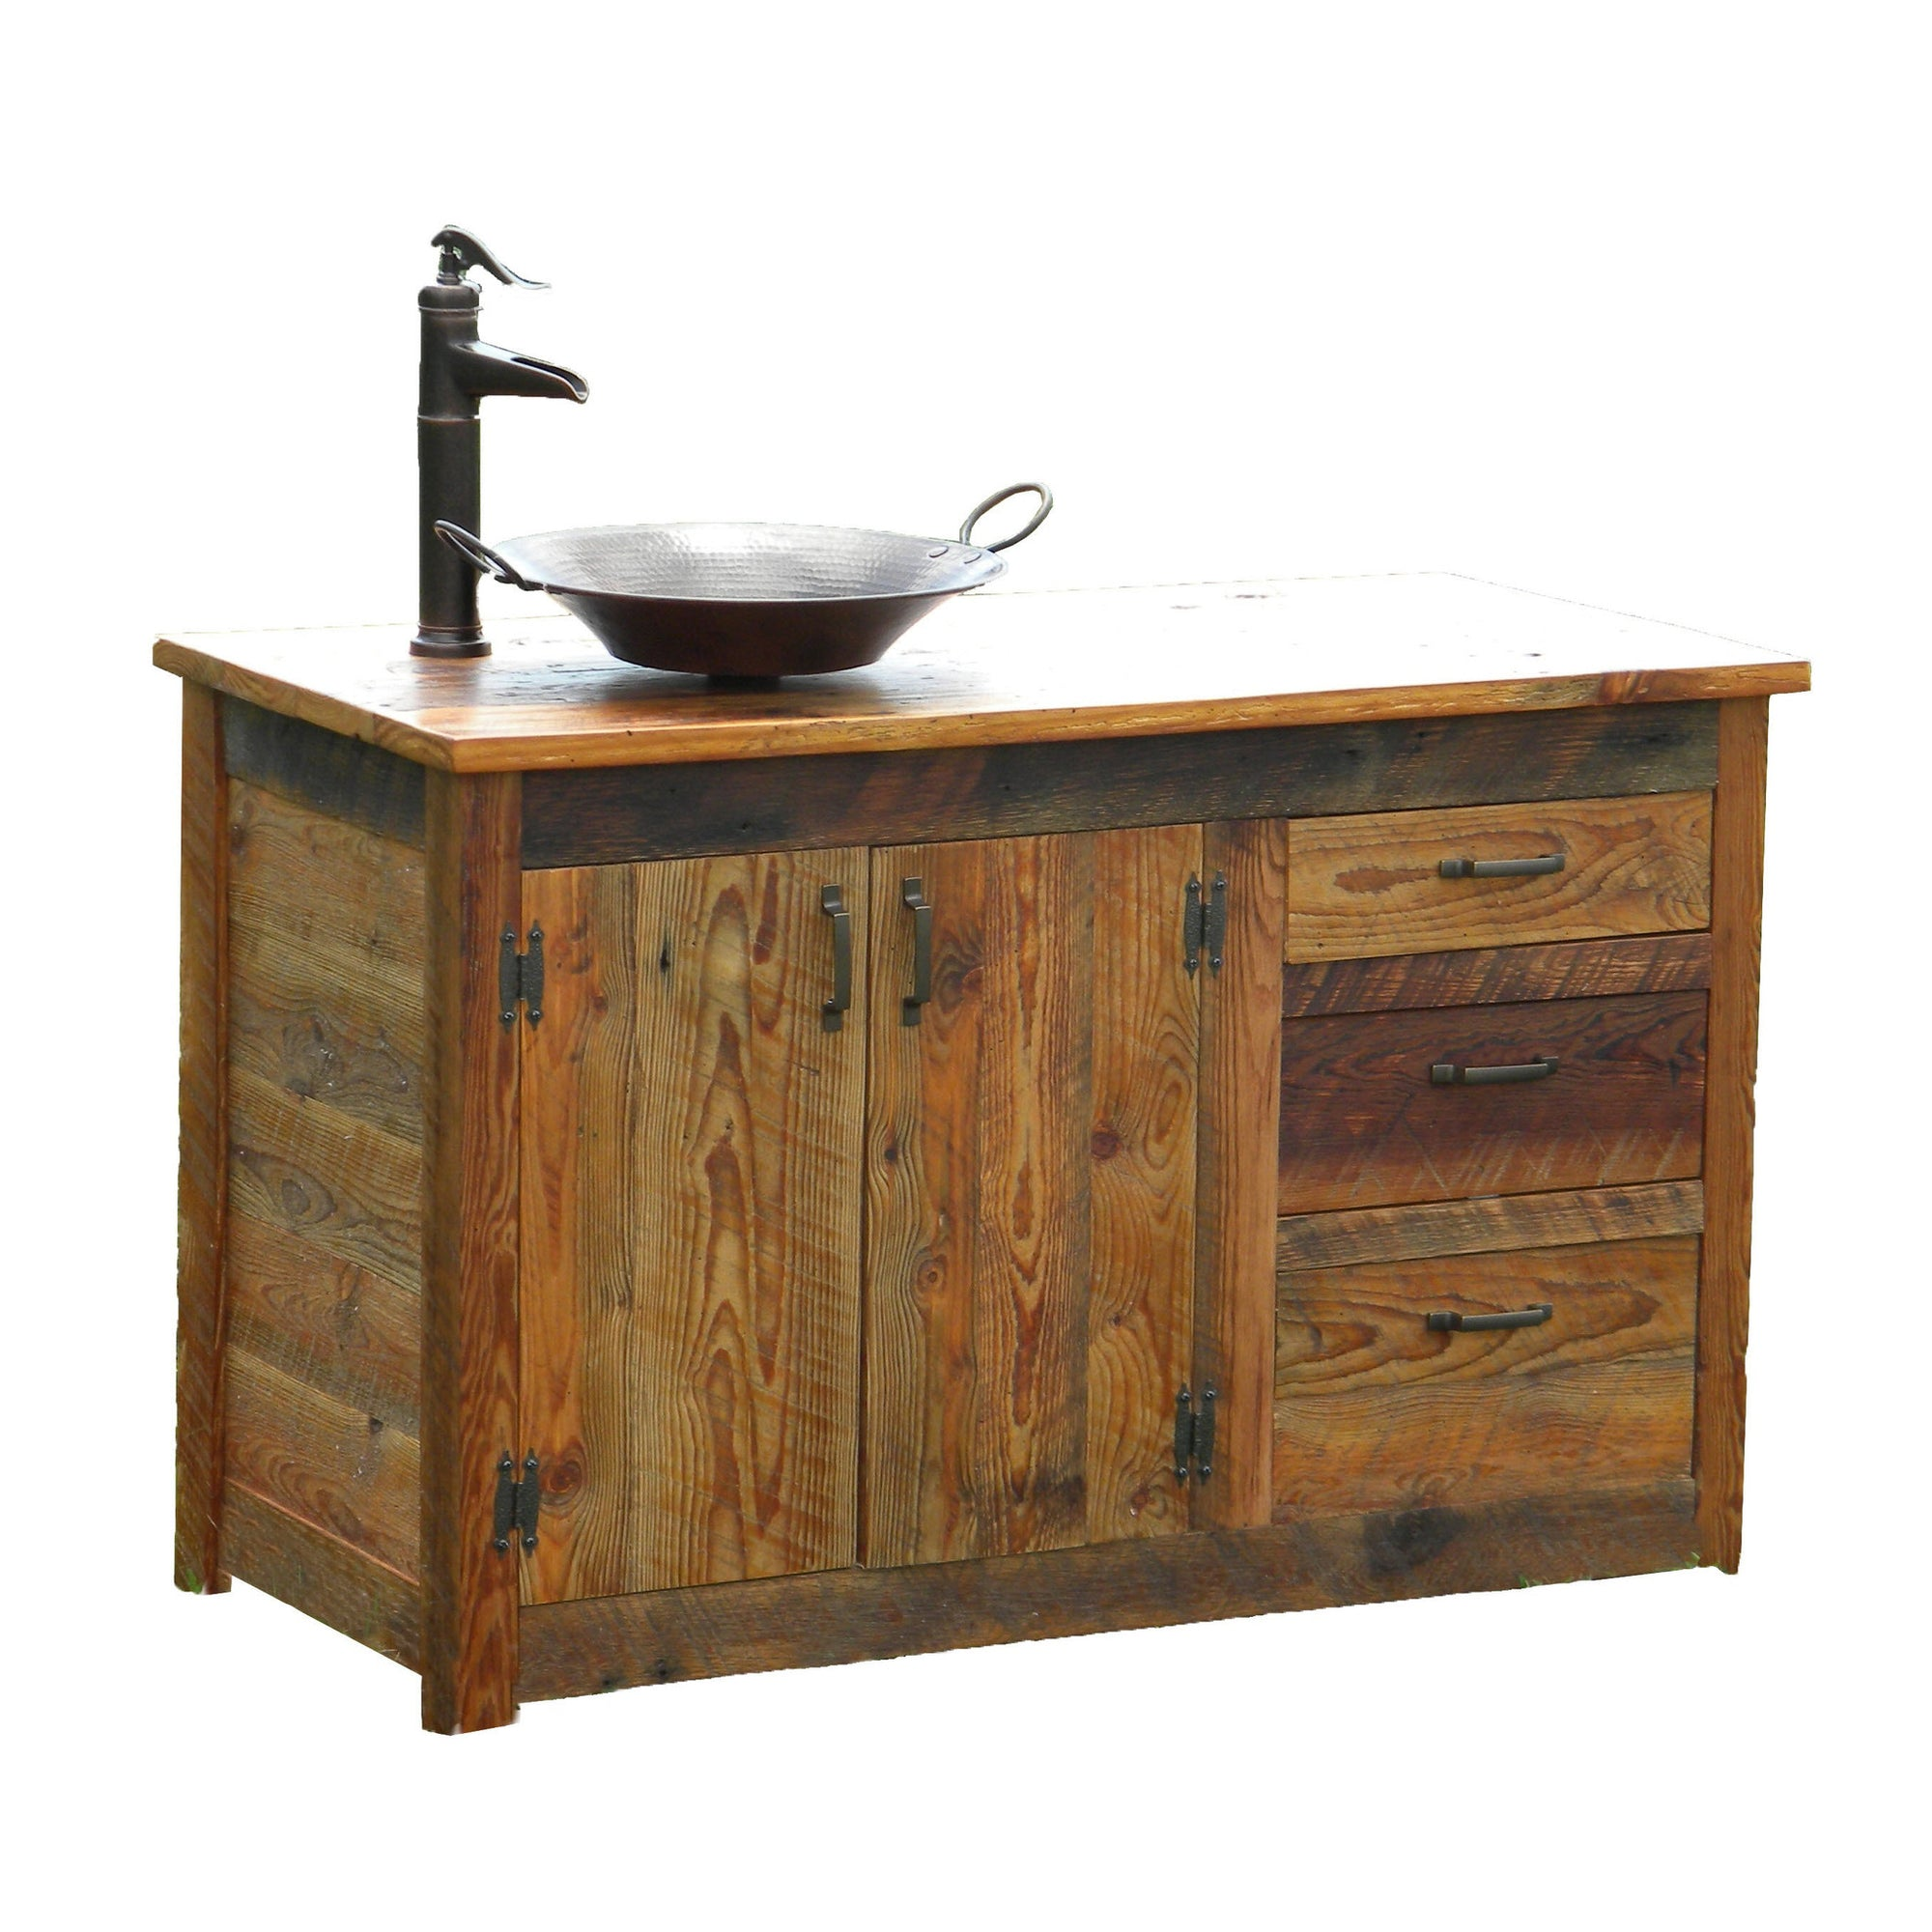 vanity to you throughout design black need sink ideas white manitoba and weathered wooden with bathroom on wood know cabinet